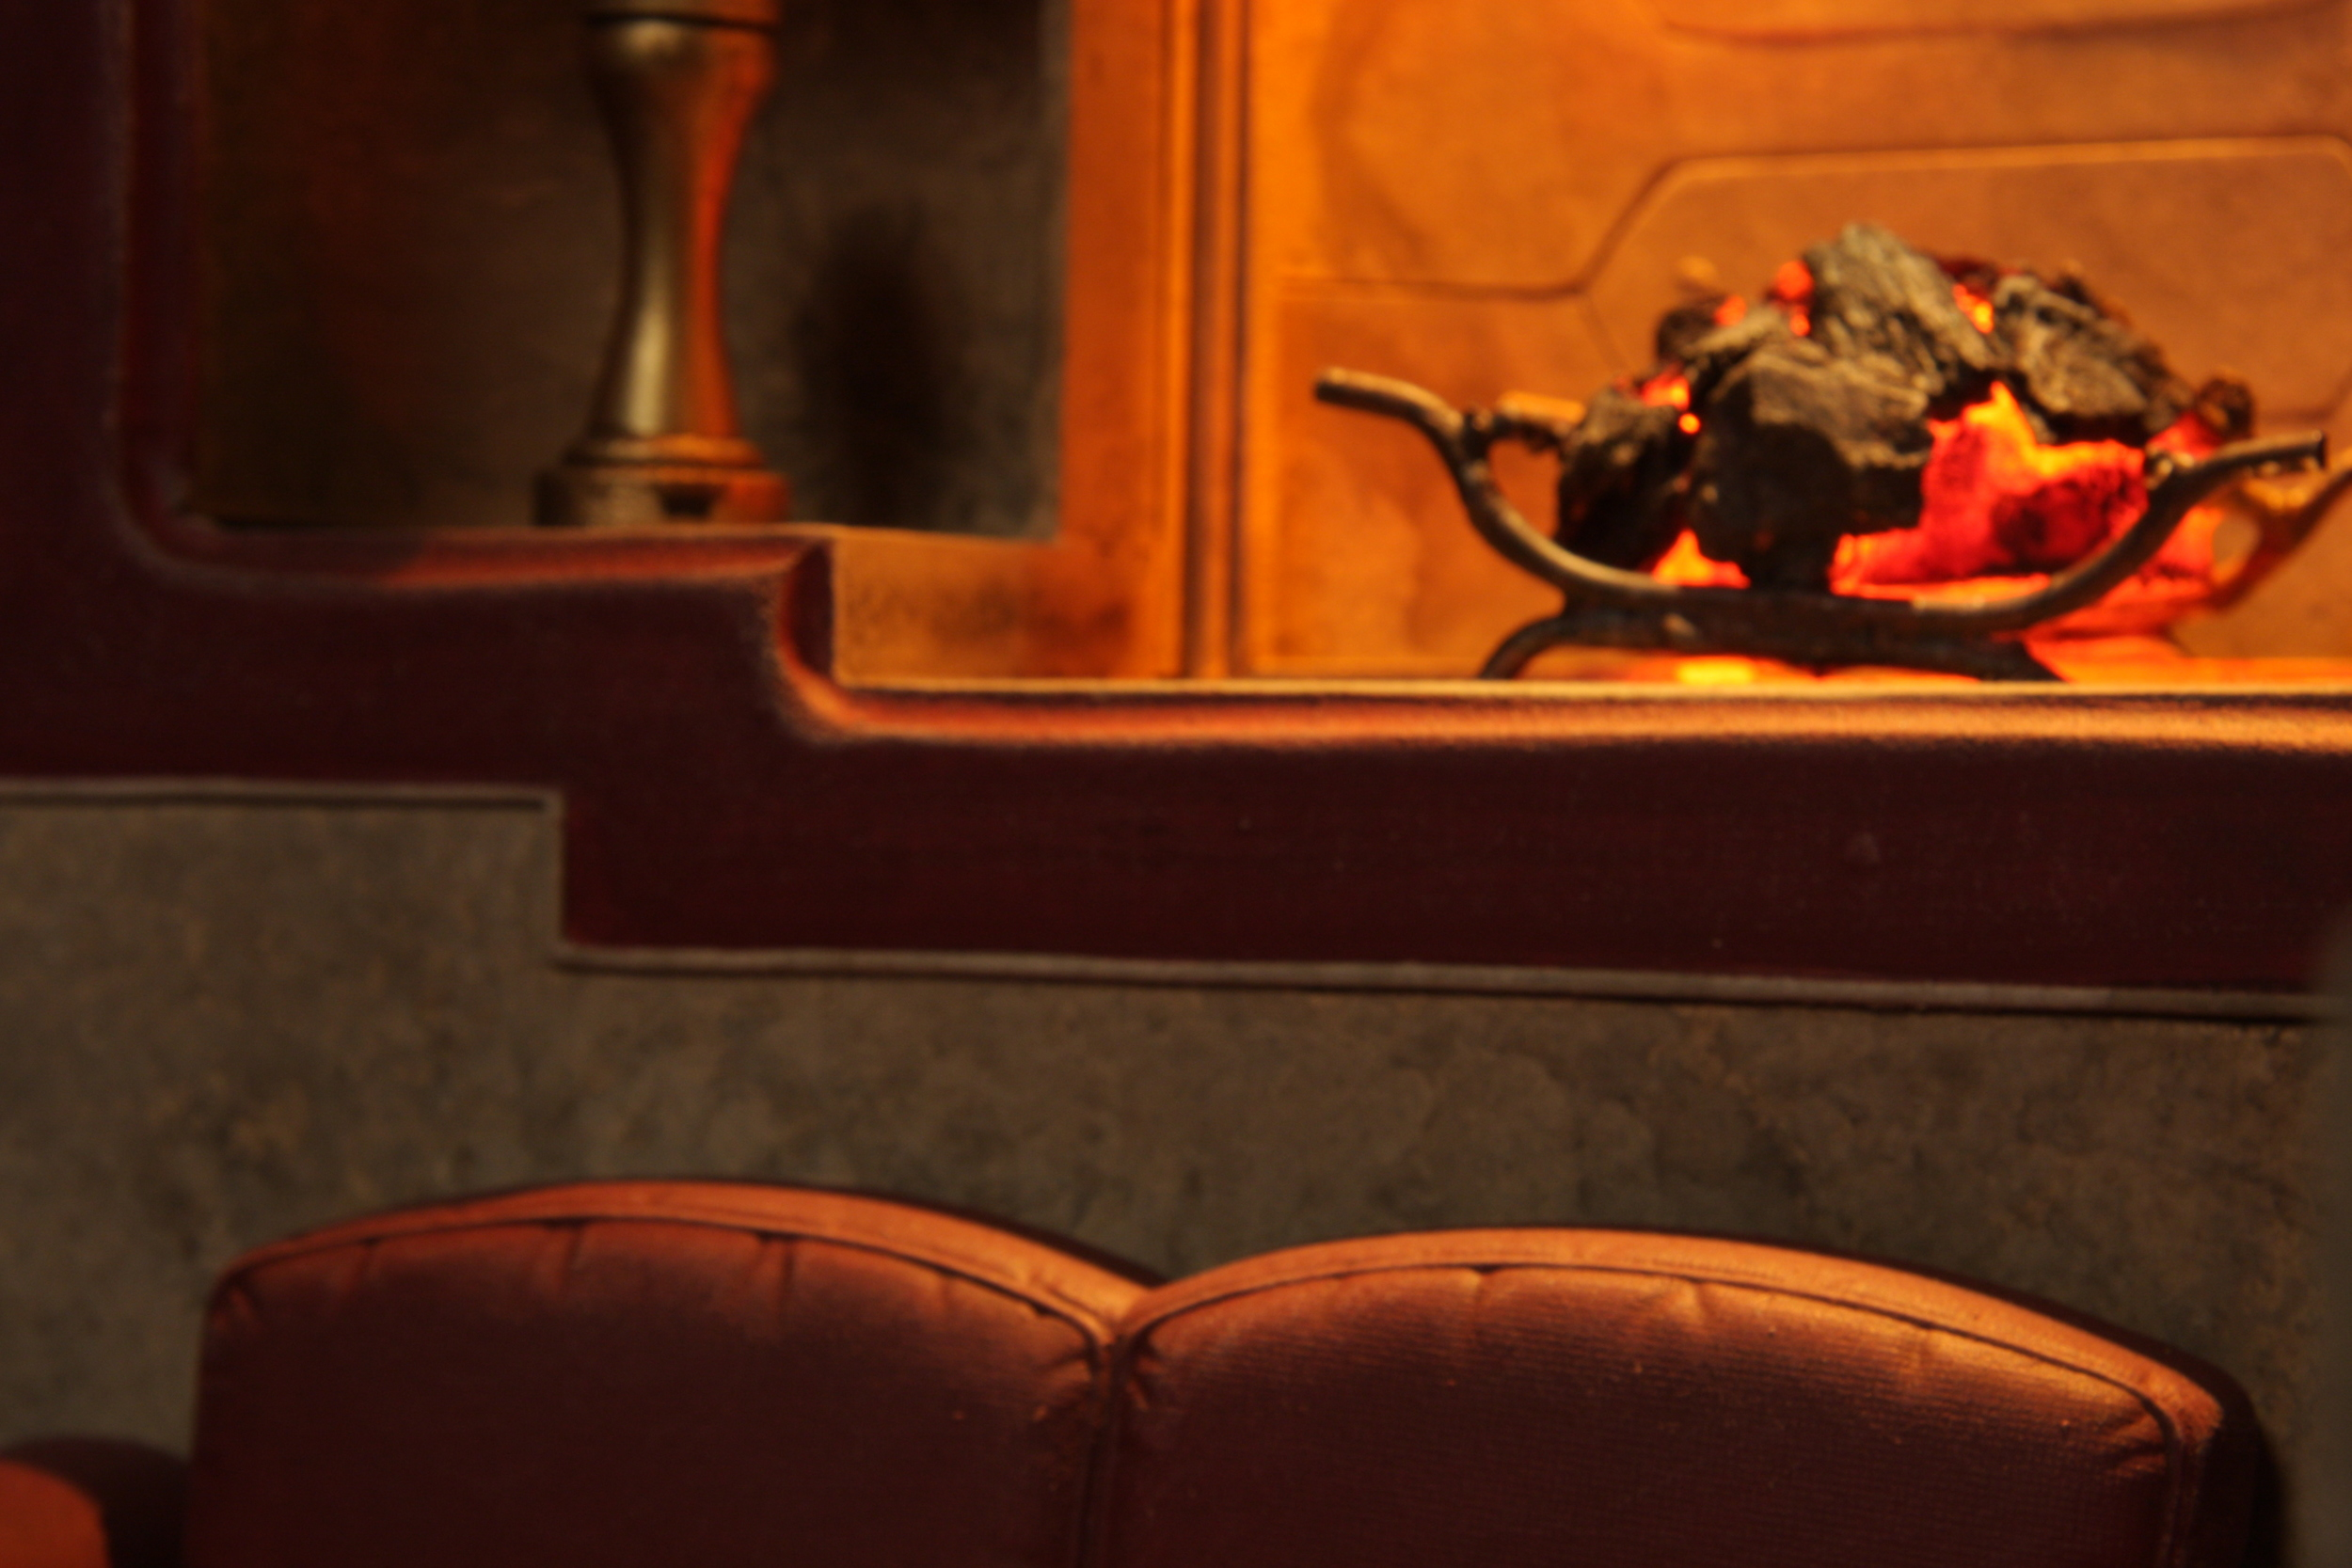 Robot Chicken Star Wars 2 Image 11.jpg